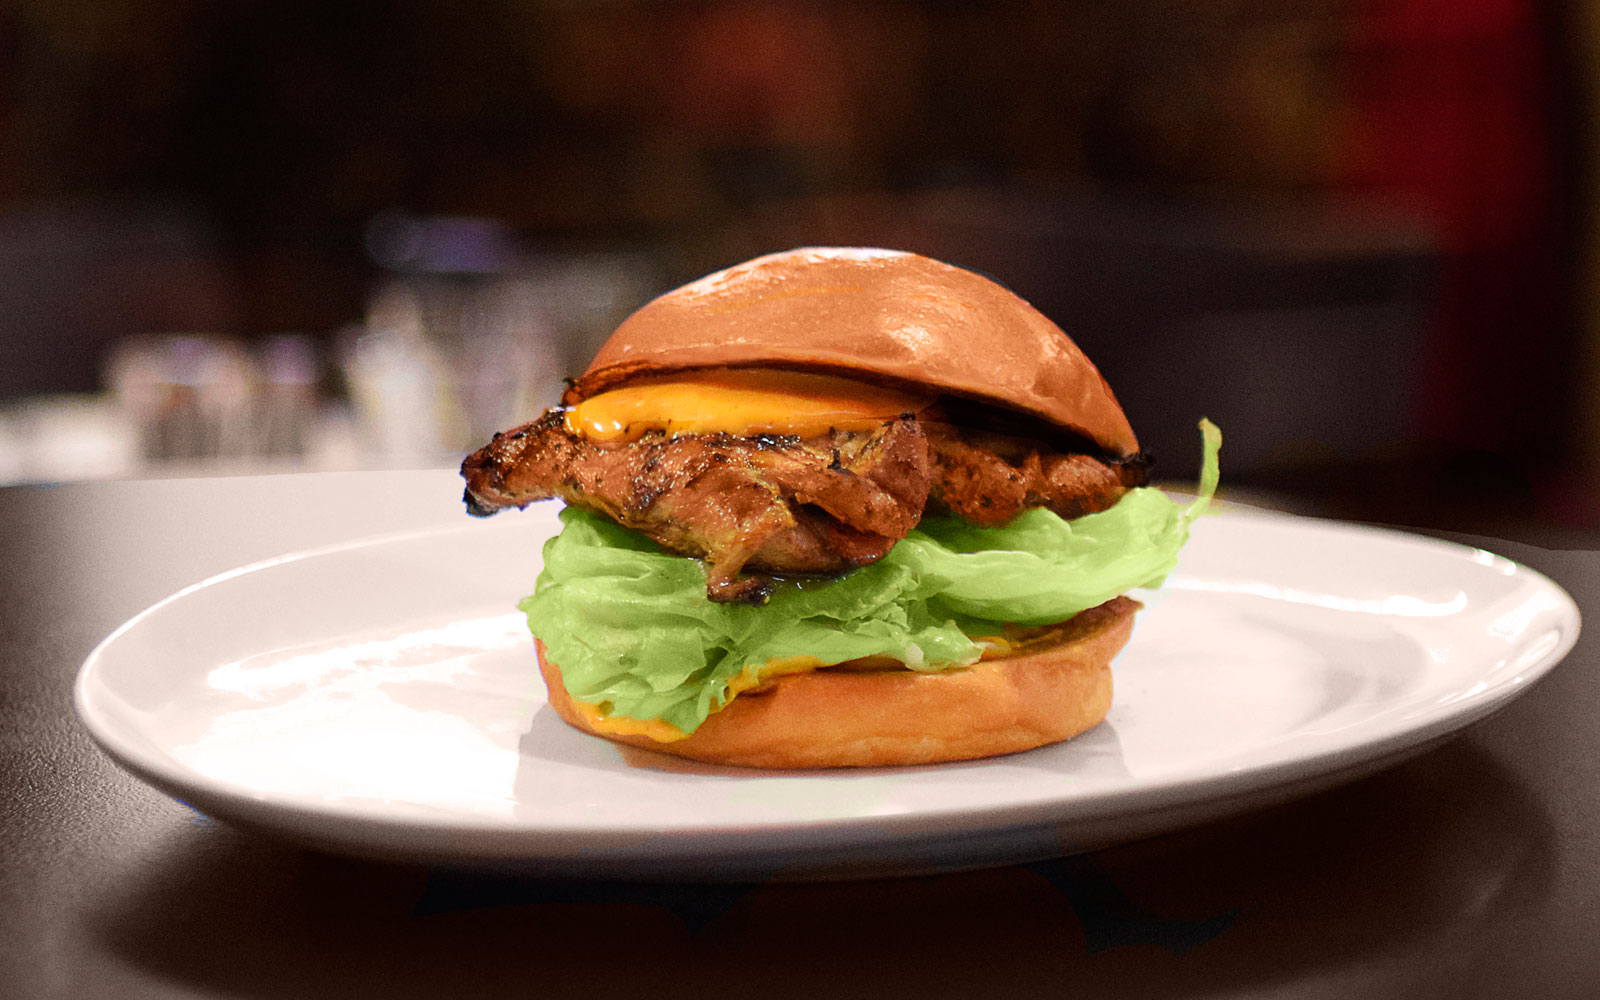 Sydney's Artisan Farmhouse Cheeseburger Collection Launches At No.1 Martin Place